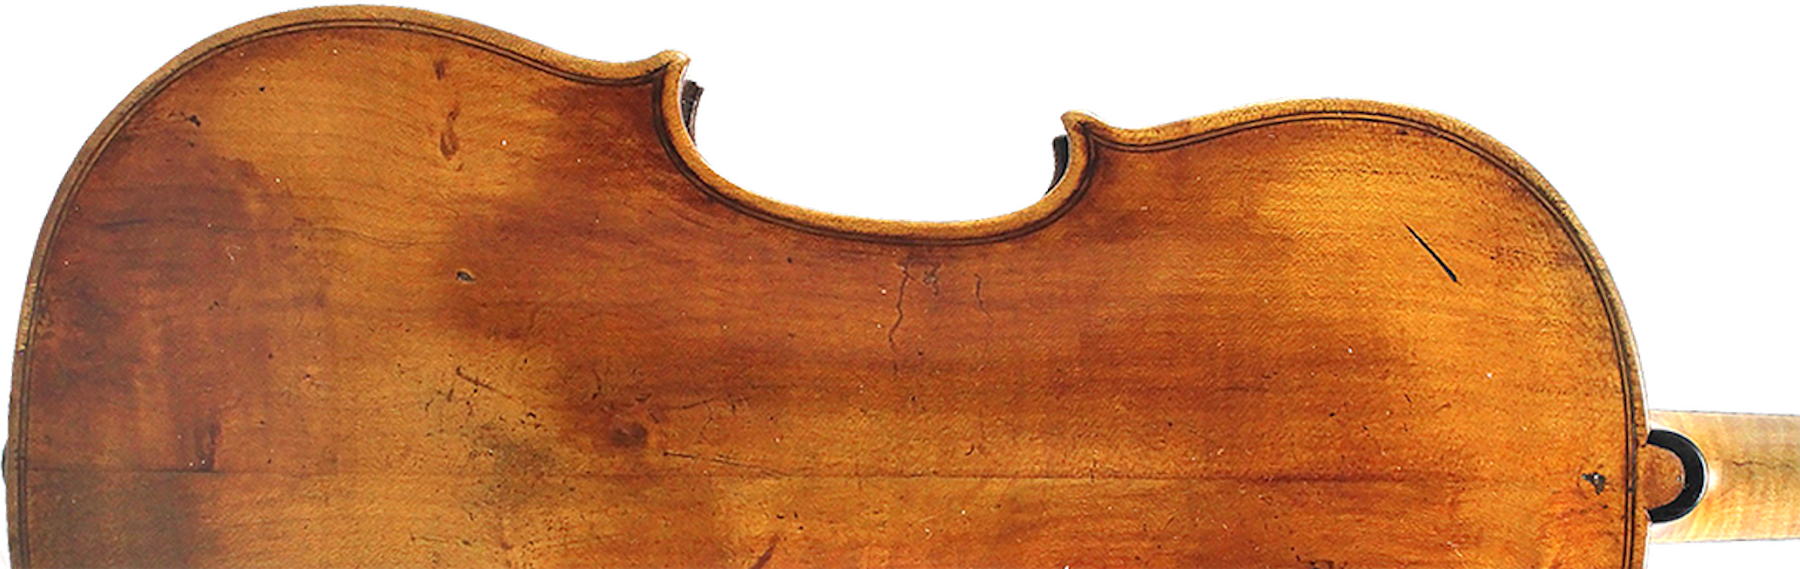 violin front page